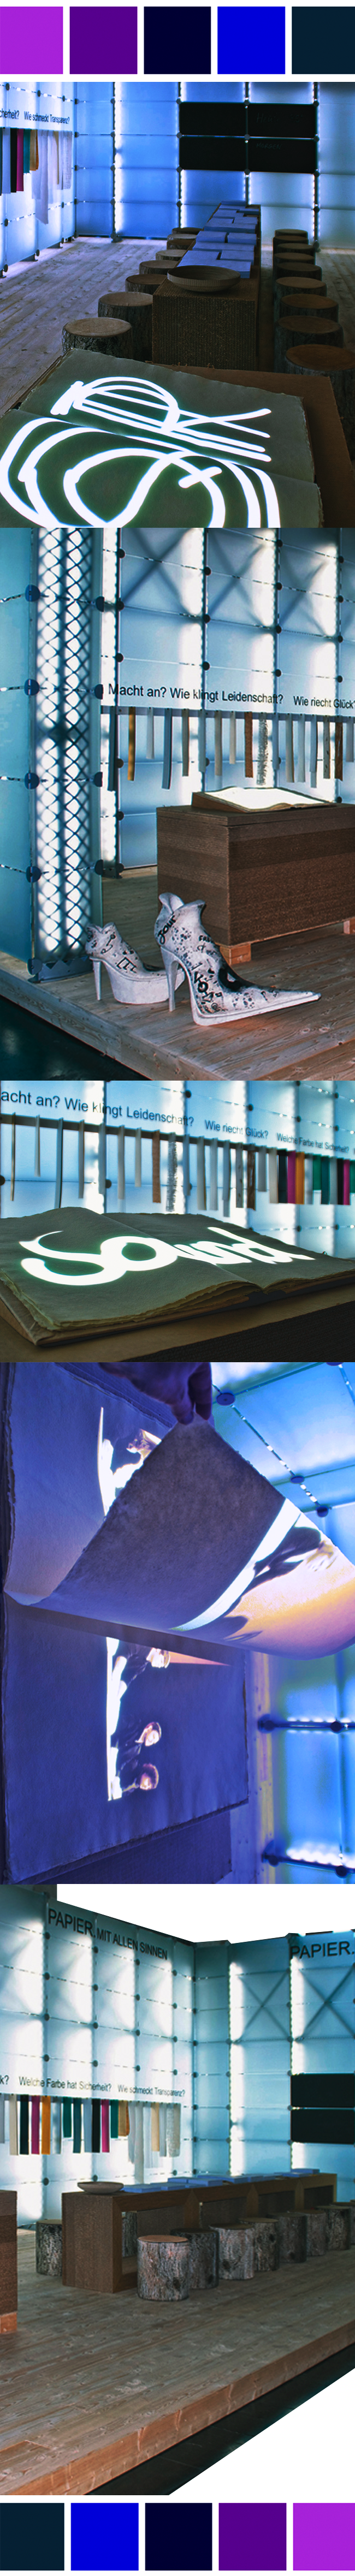 booth design with projection screen on giant book-1